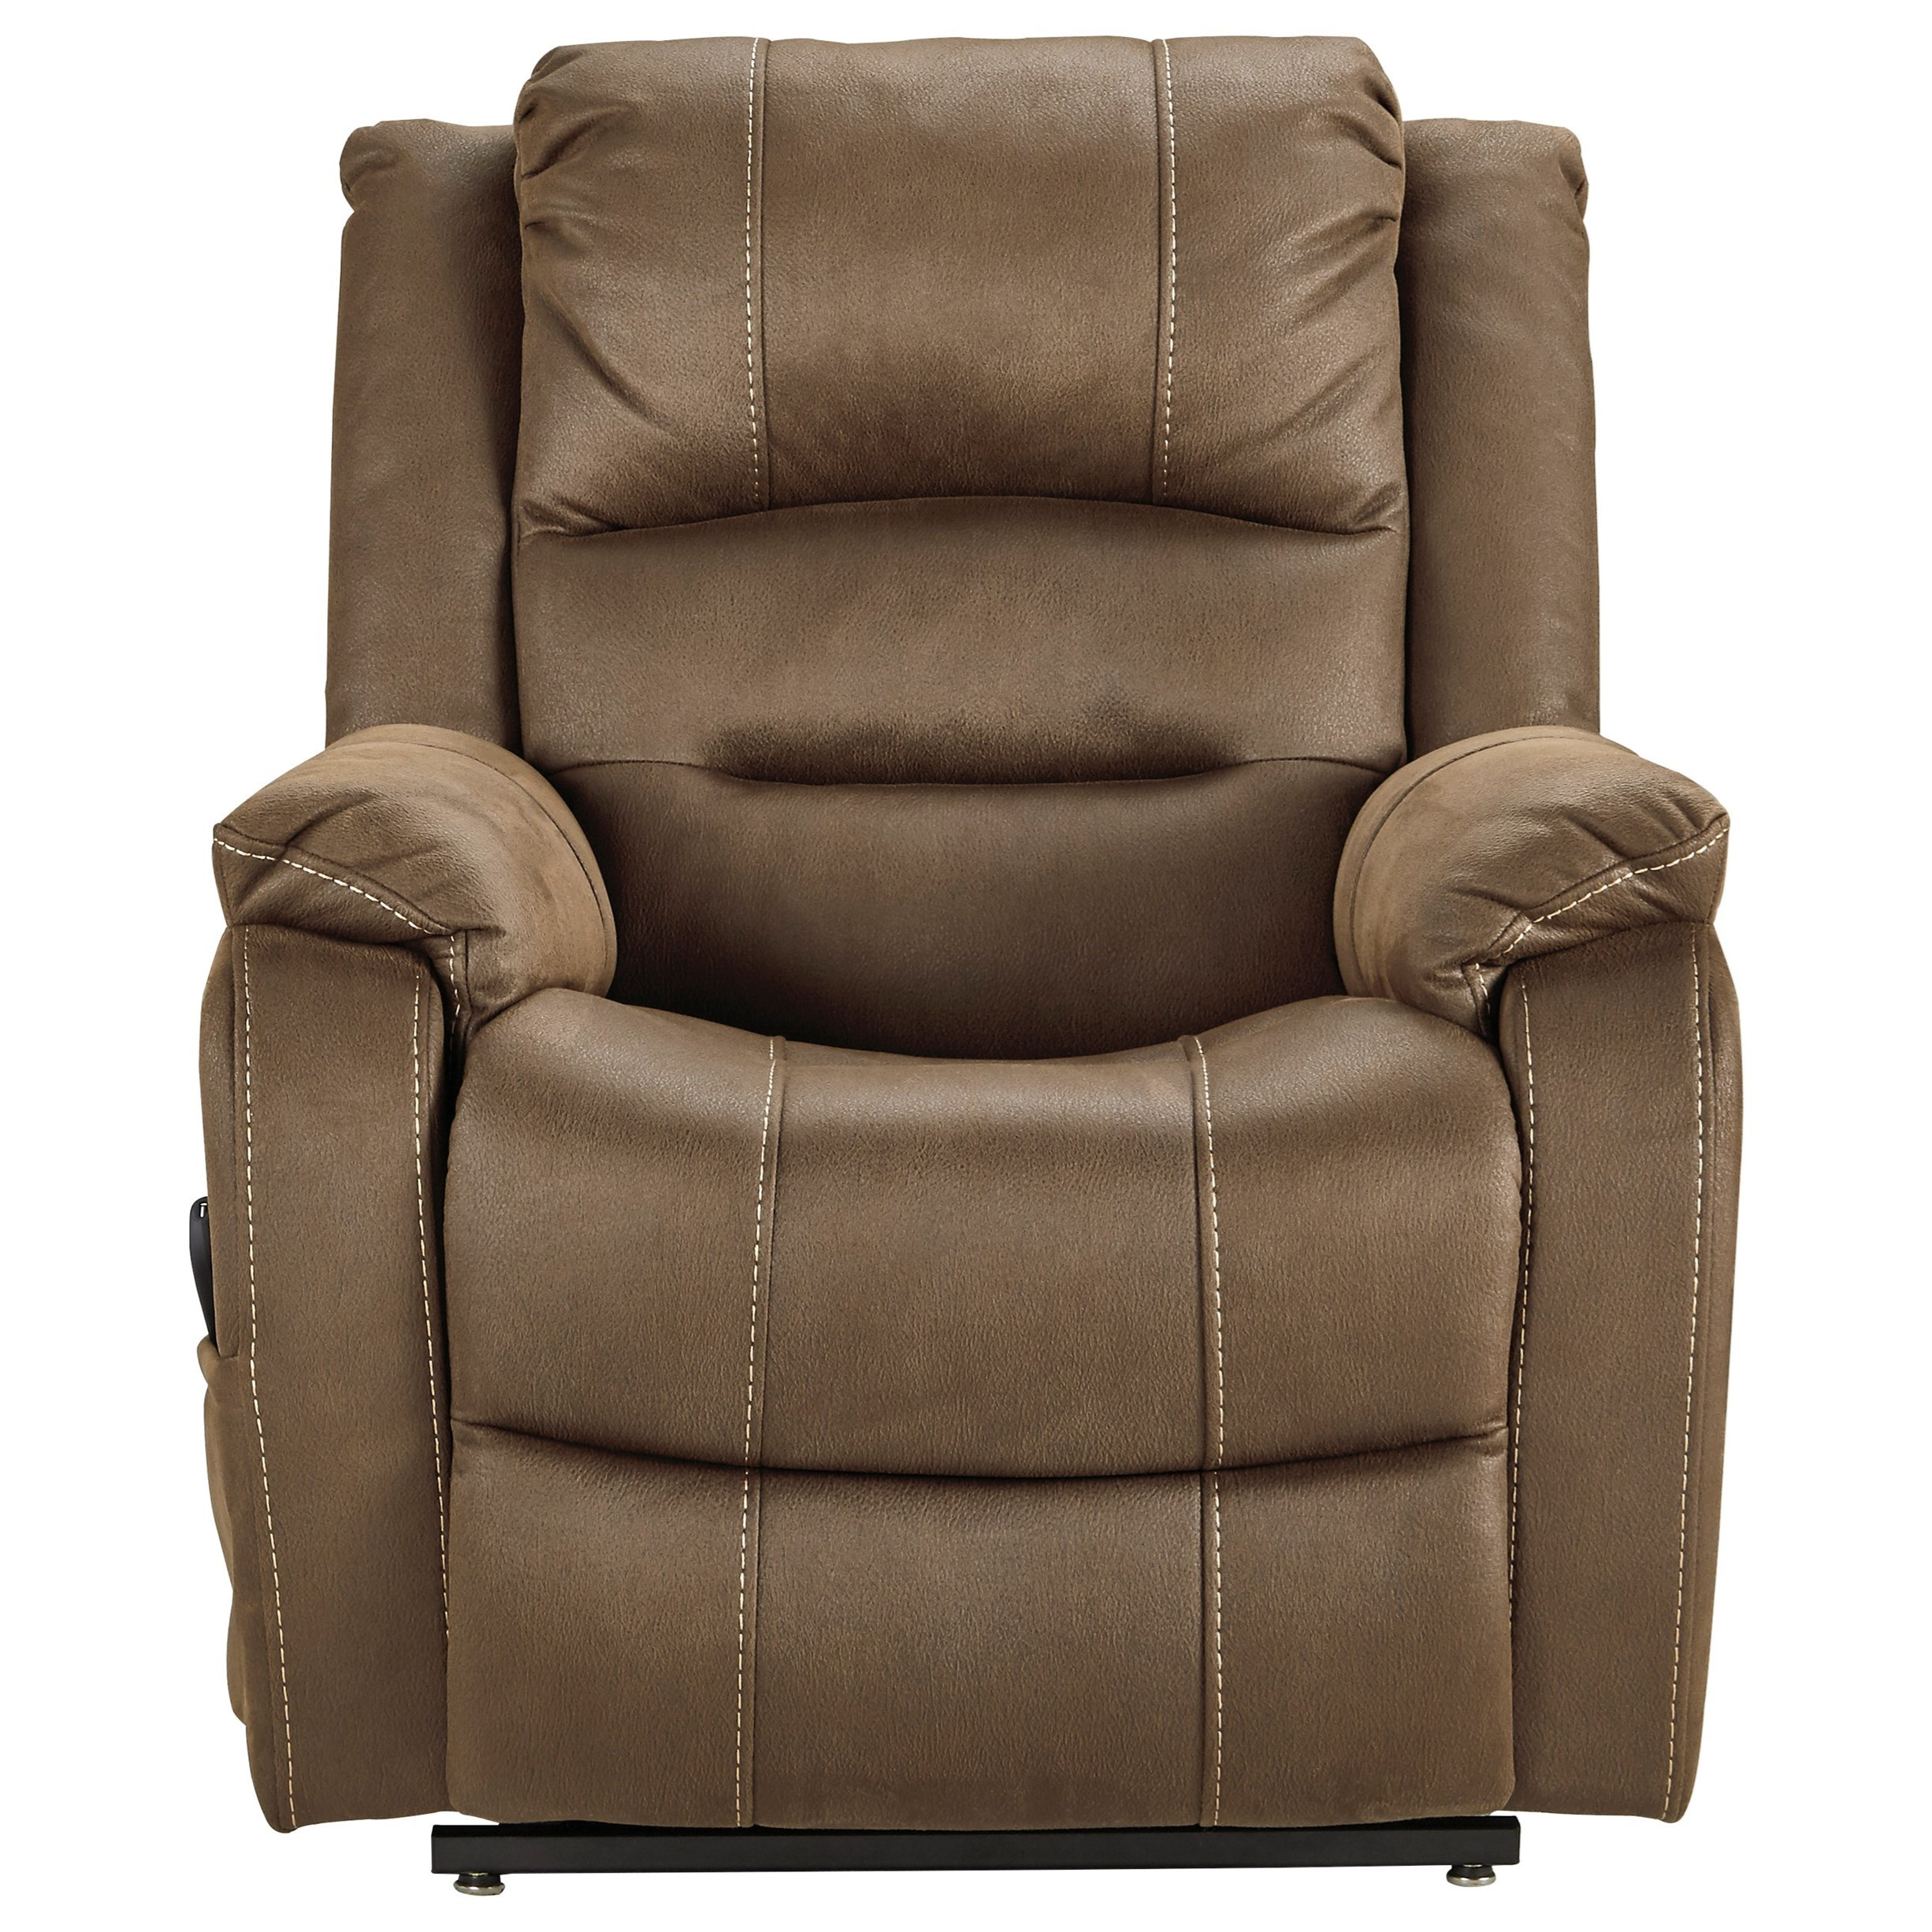 Whitehill Power Lift Recliner by Signature Design by Ashley at Northeast Factory Direct